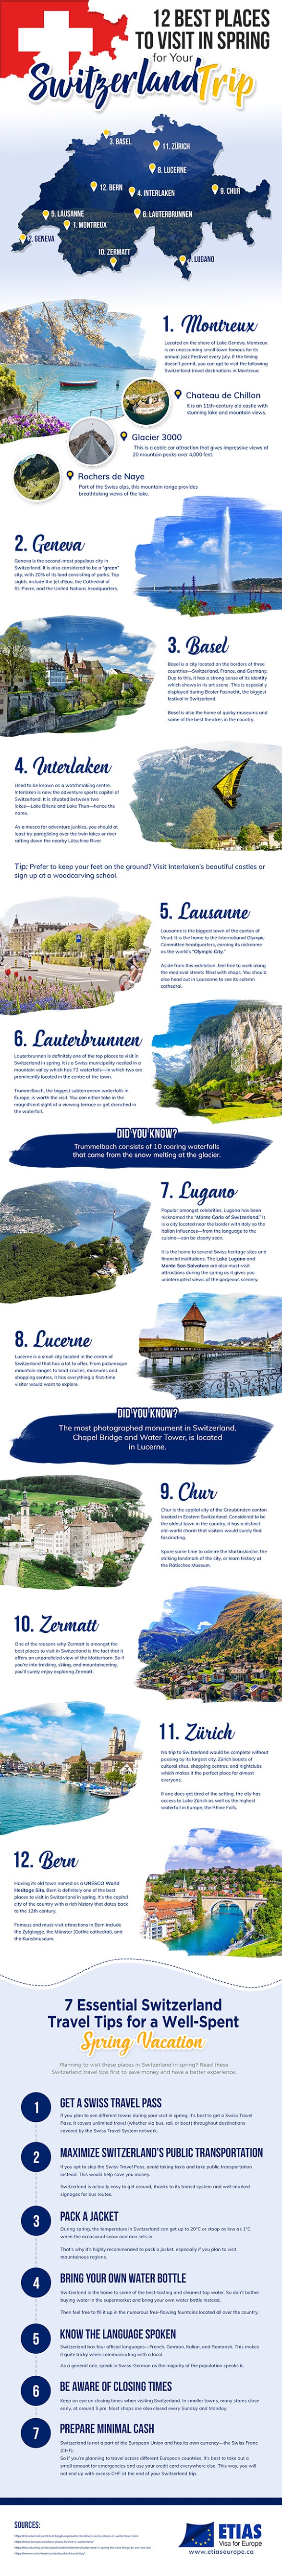 12 Best Places to Visit in Spring for Your Switzerland Trip #infographic